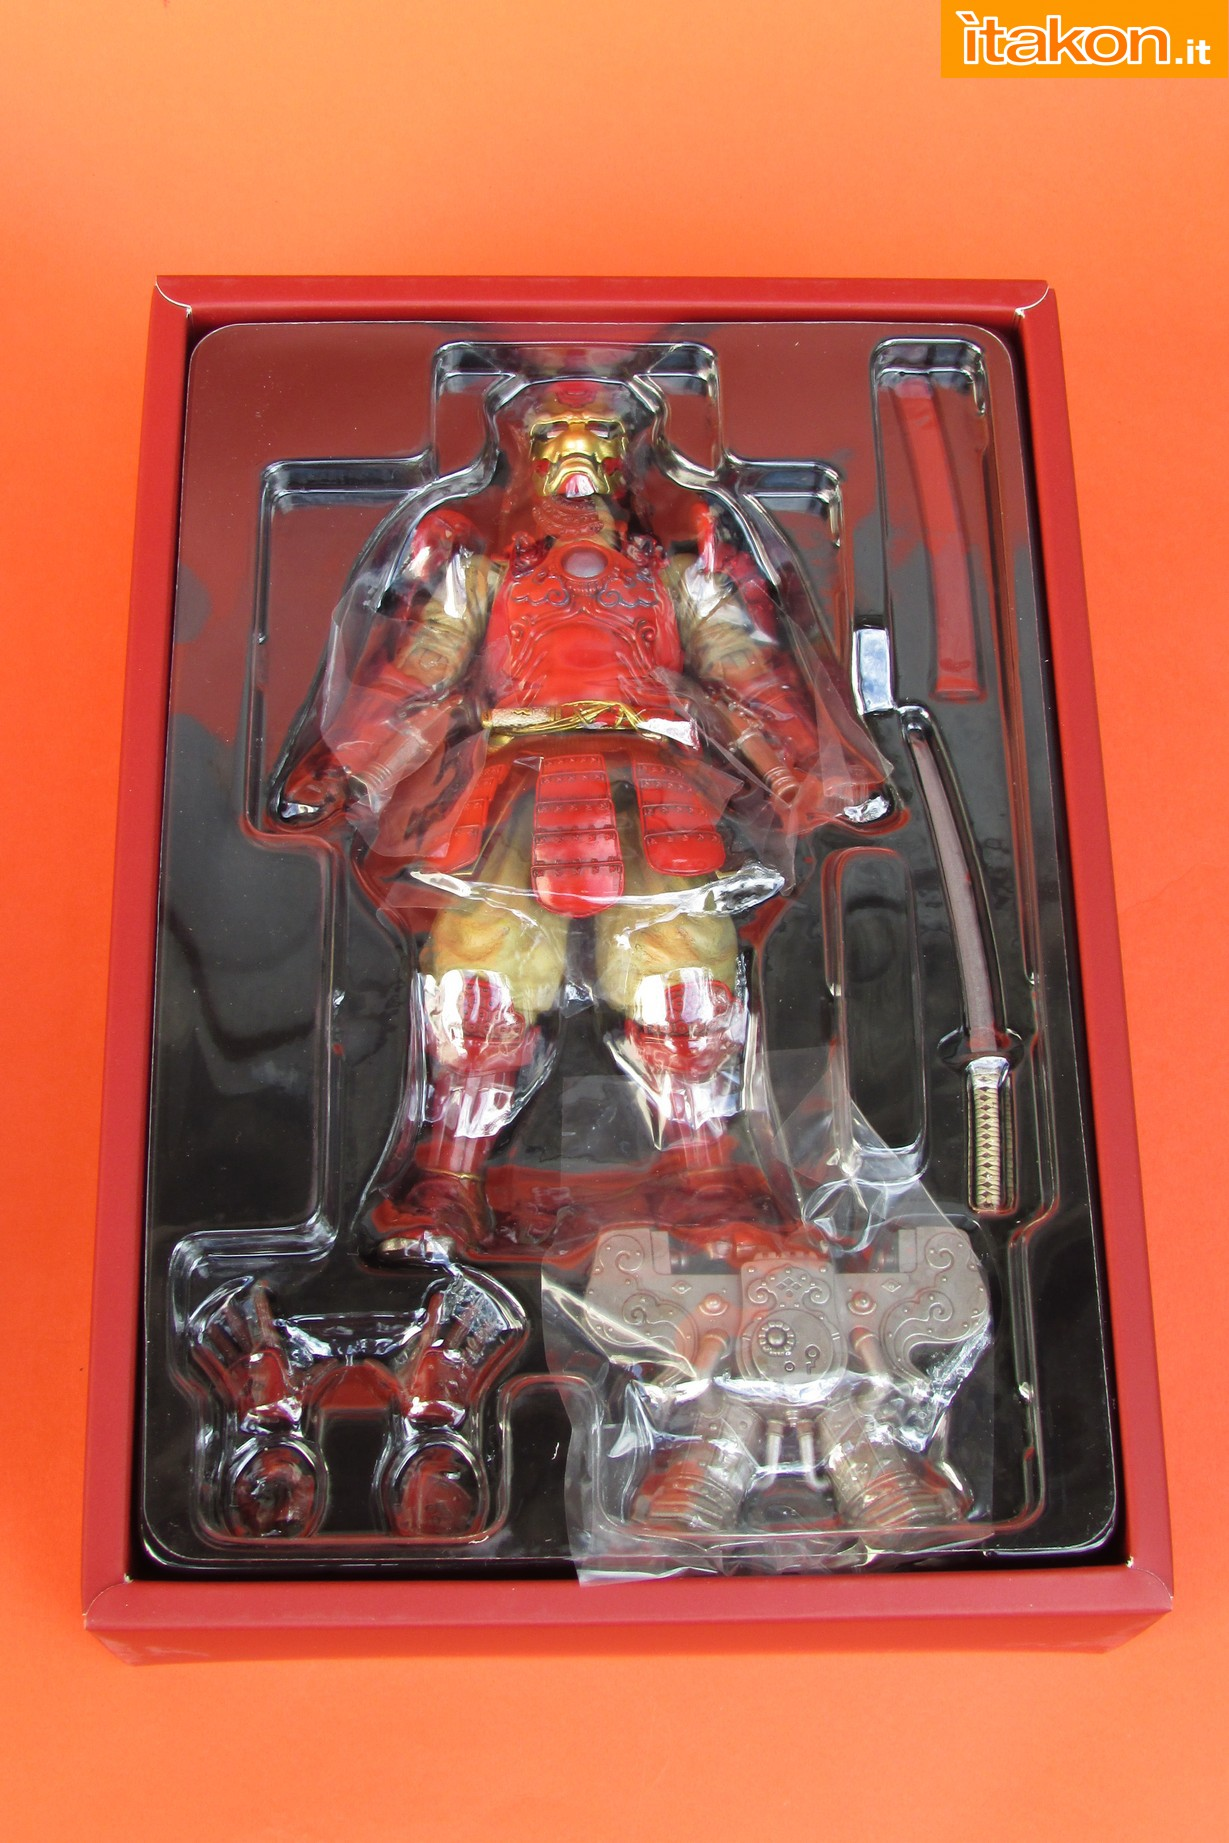 Link a Marvel Comics Koutetsu Samurai Iron Man Mark 3 Meishou MANGA REALIZATION review Bandai Itakon.it08